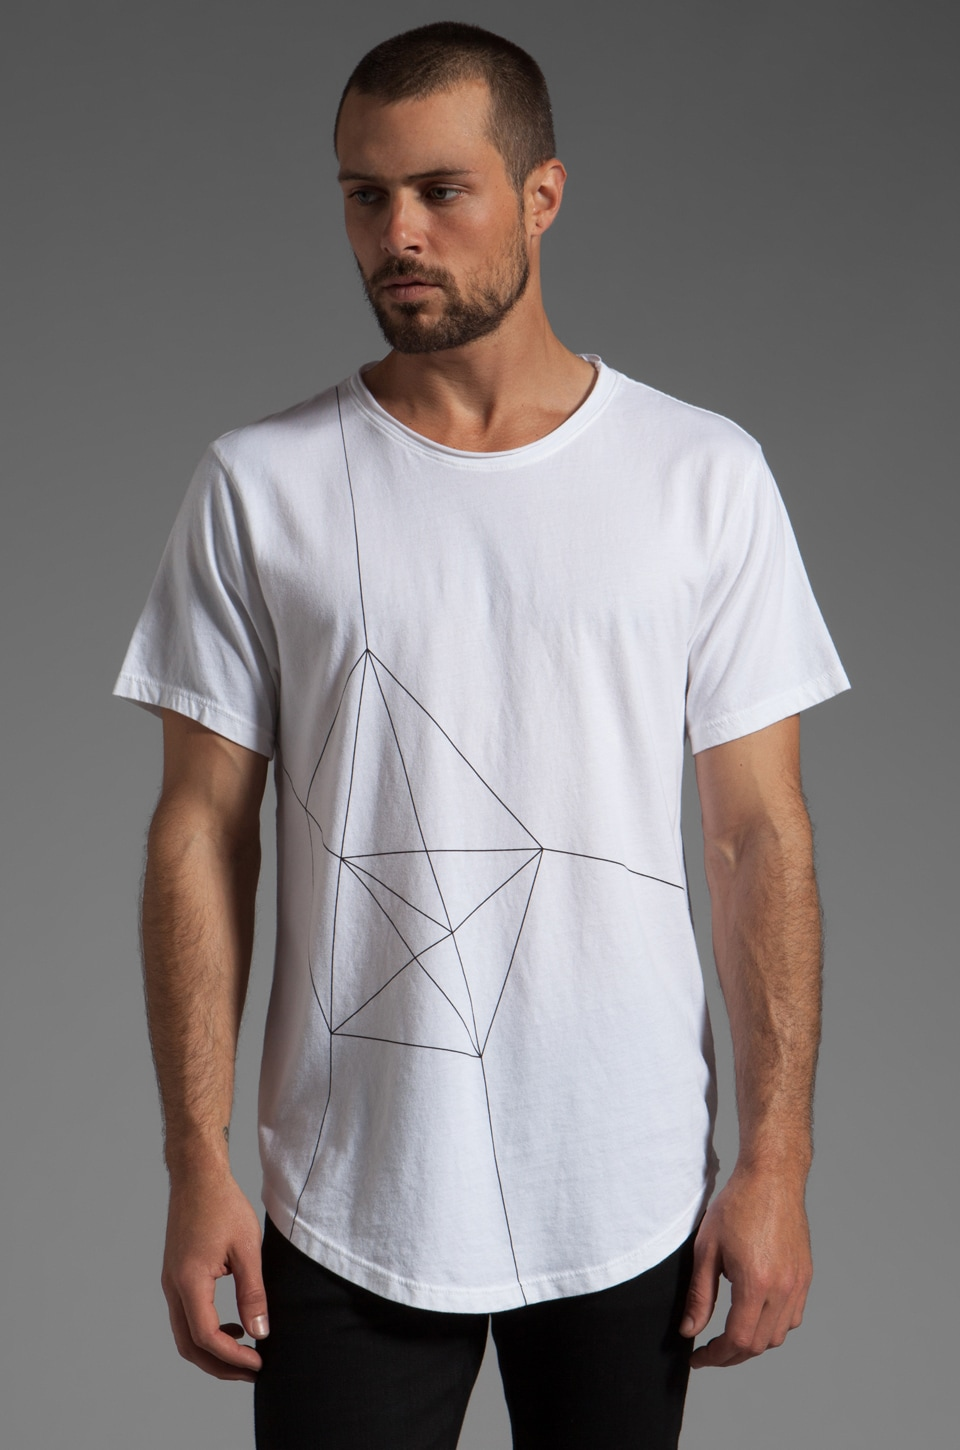 ISAORA Geo Light Printed T-Shirt in White